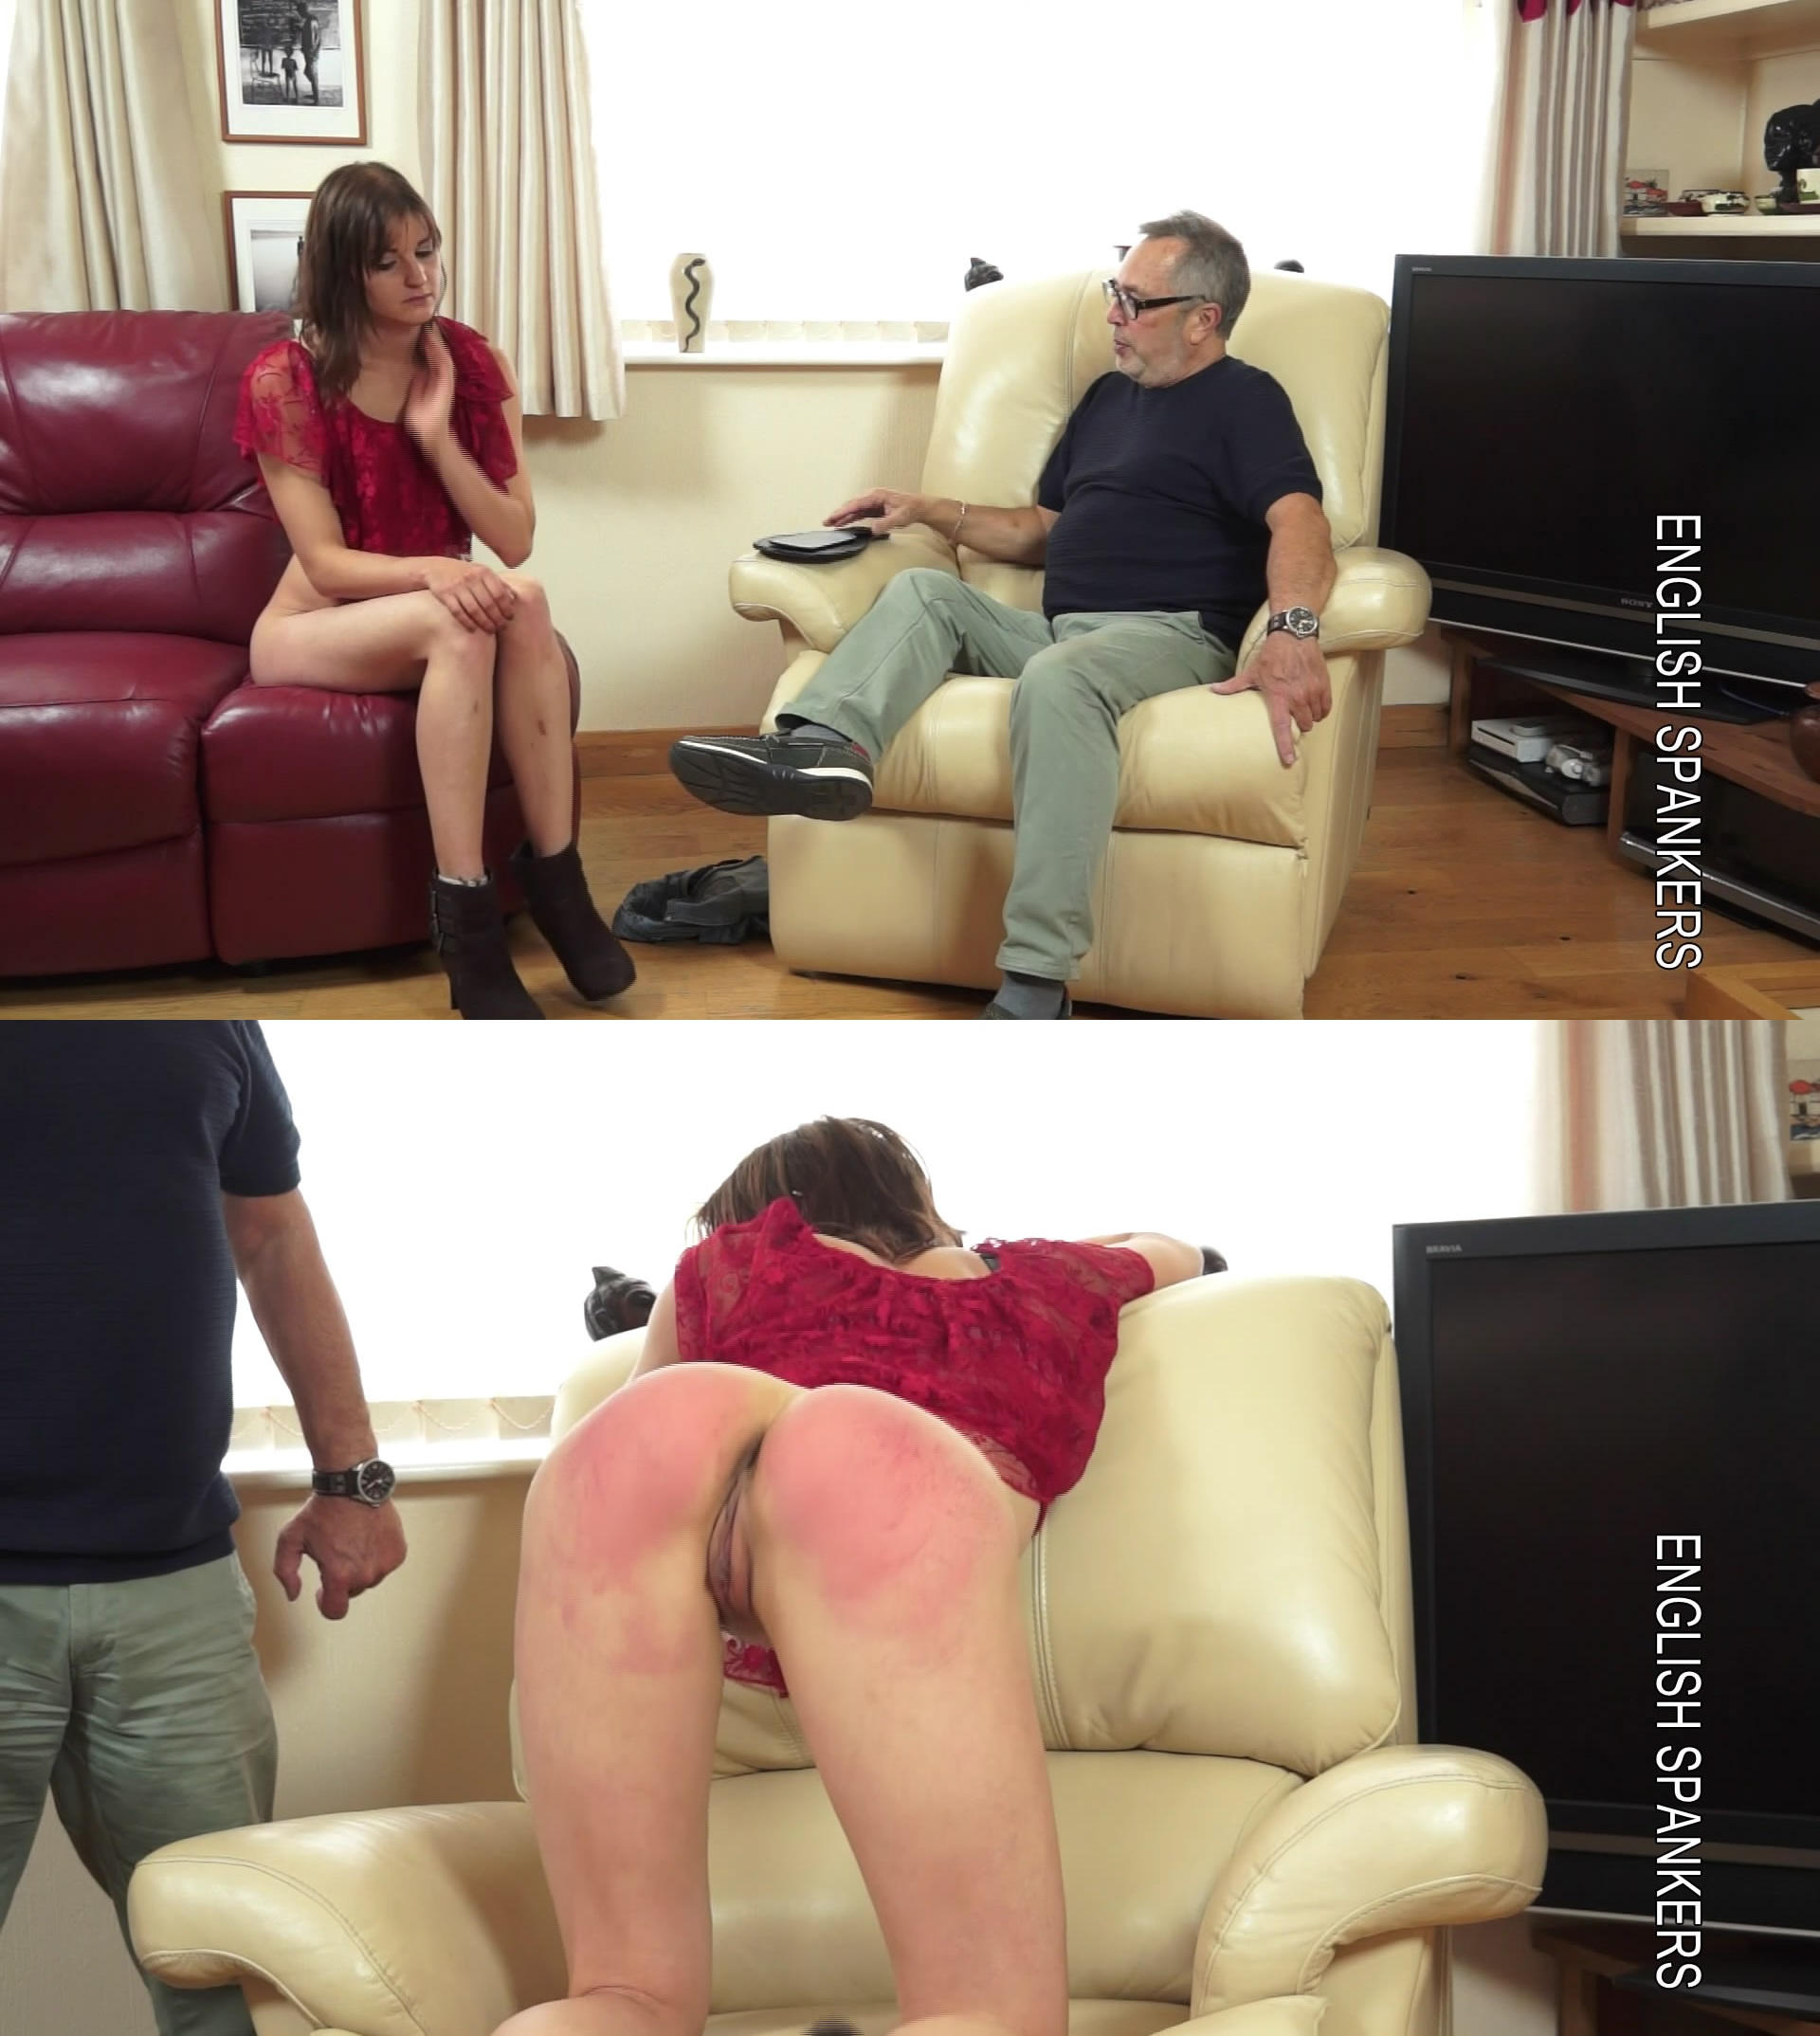 English Spankers – MP4/Full HD – April Visits Mr Stern spr-1550